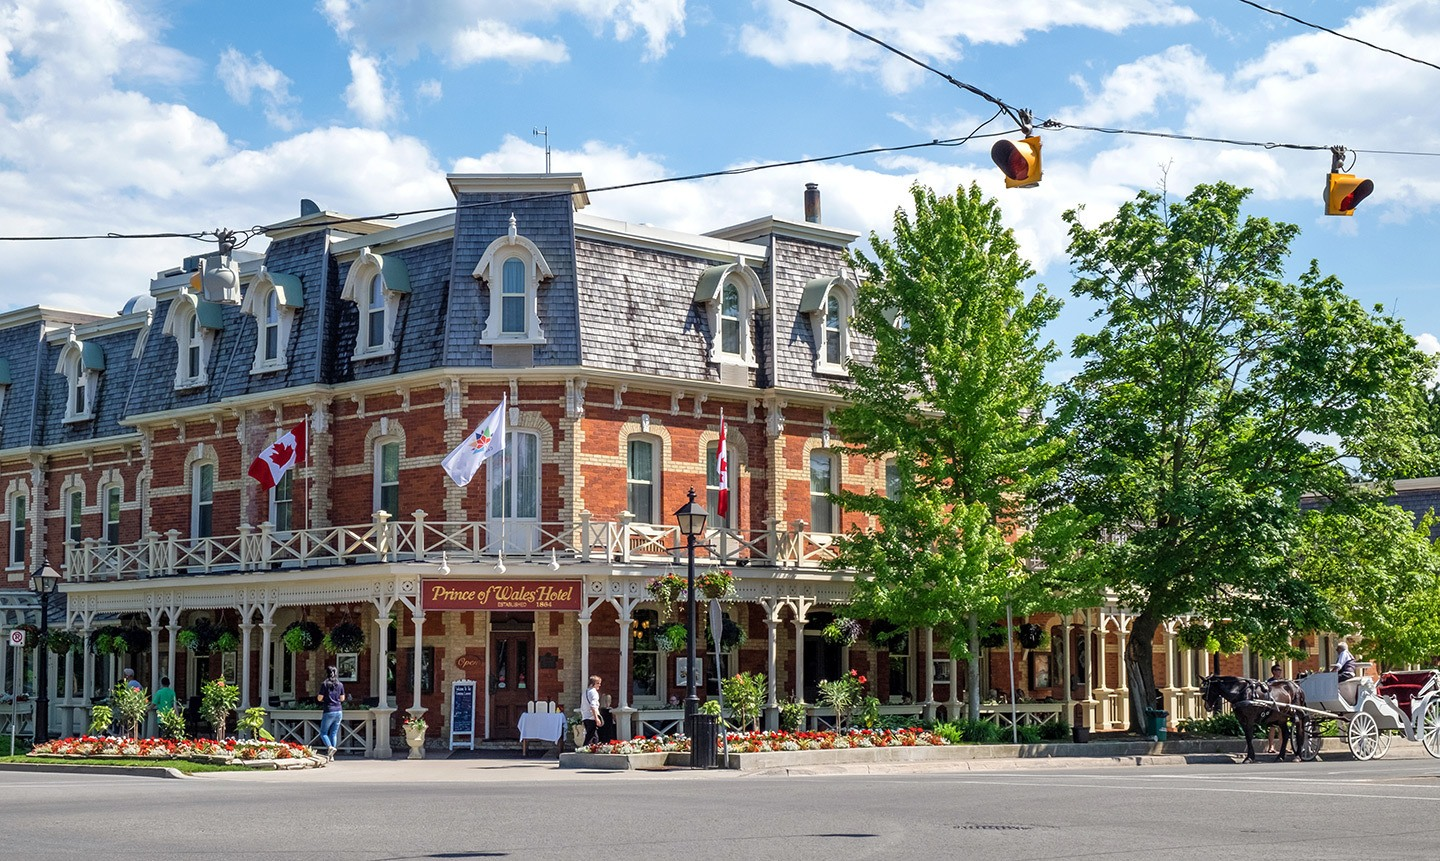 Niagara-on-the-Lake, Ontario, Canada